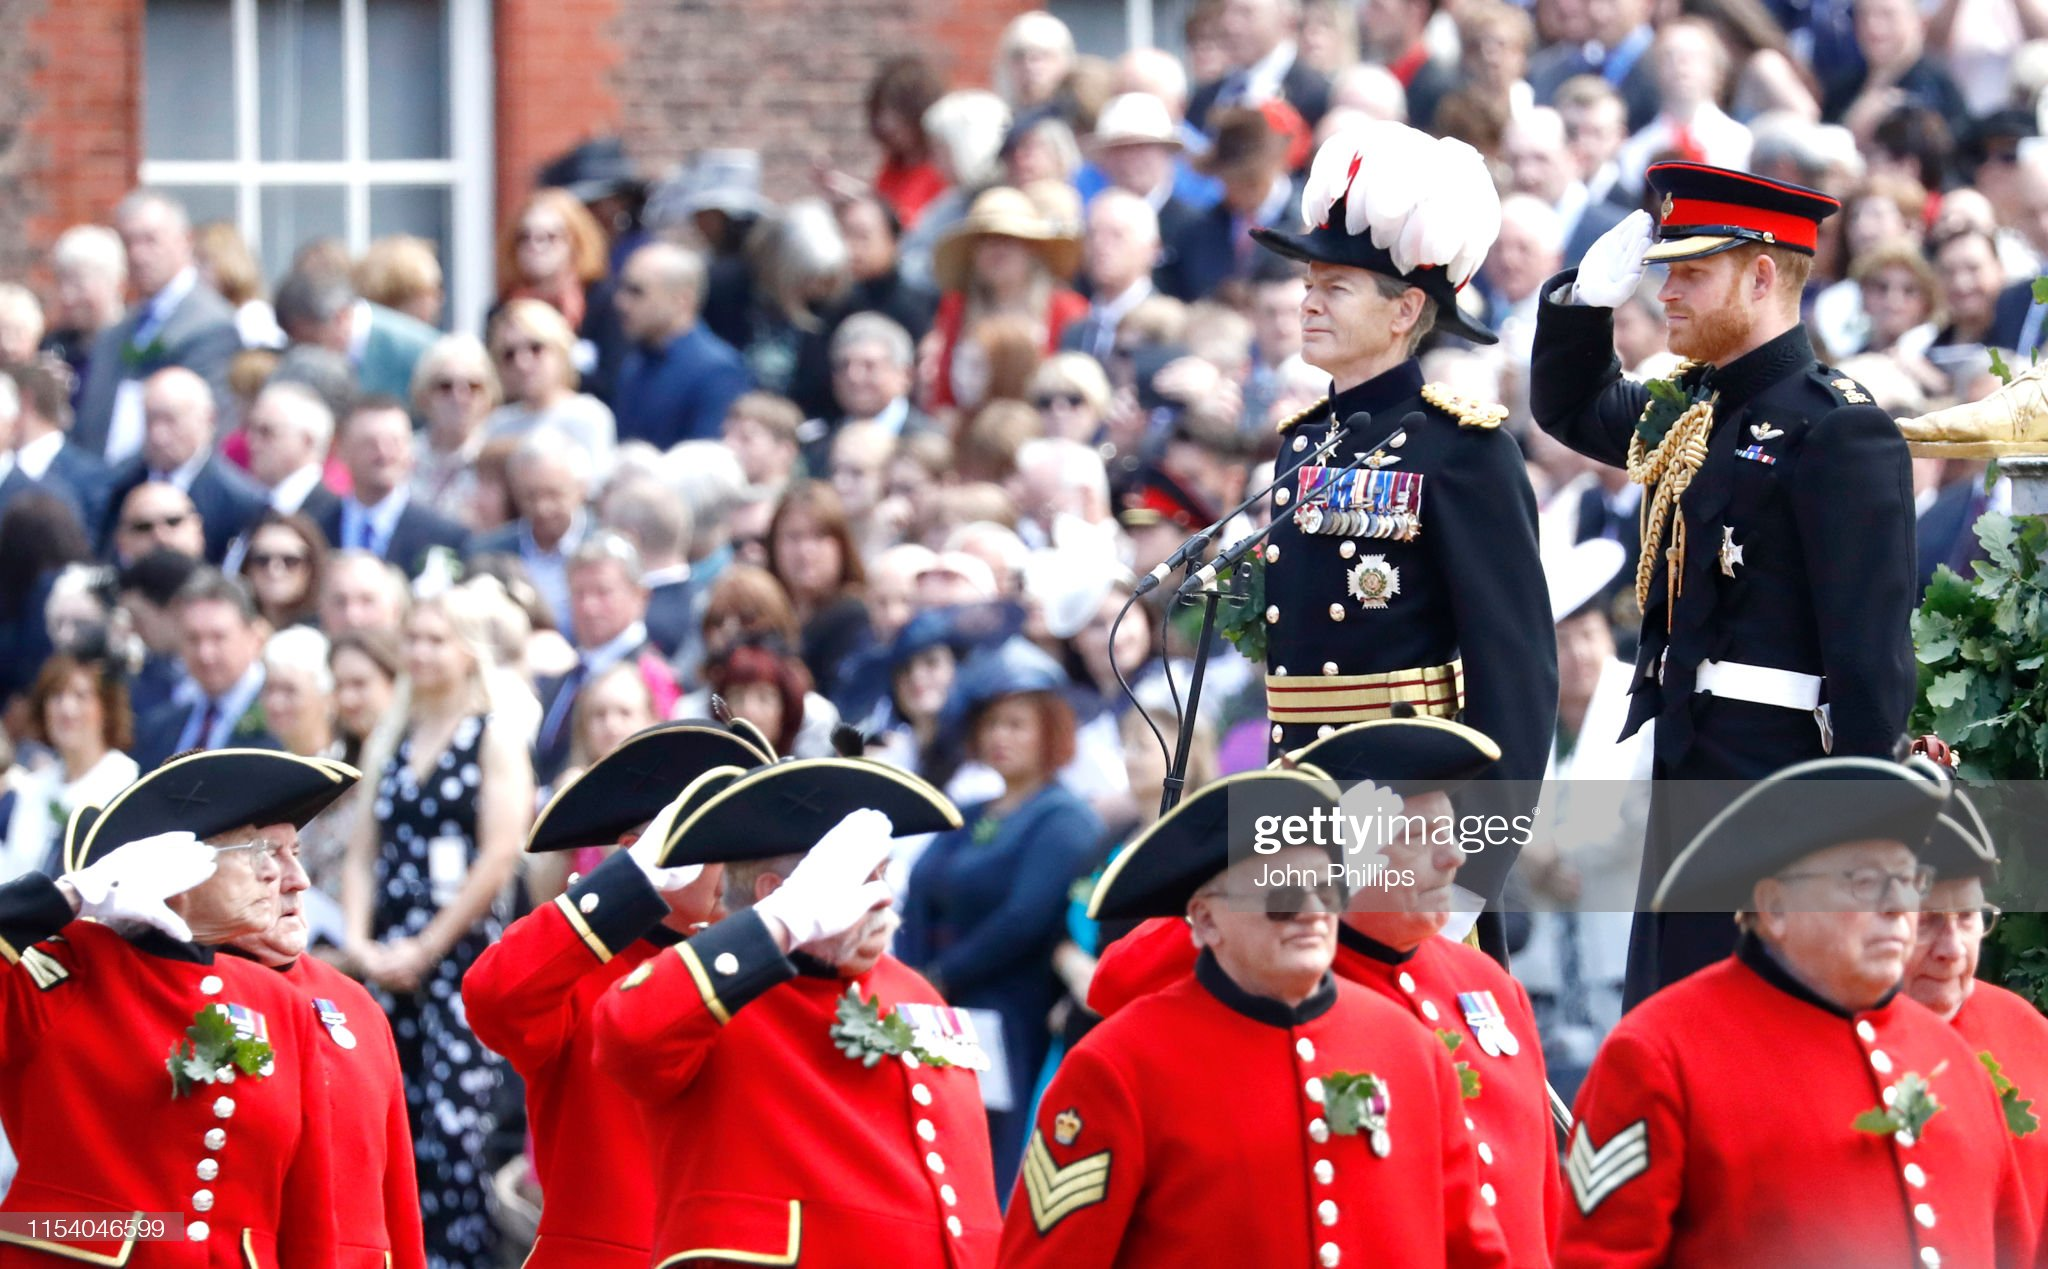 prince-harry-duke-of-sussex-salutes-the-veterans-and-chelsea-as-he-picture-id1154046599